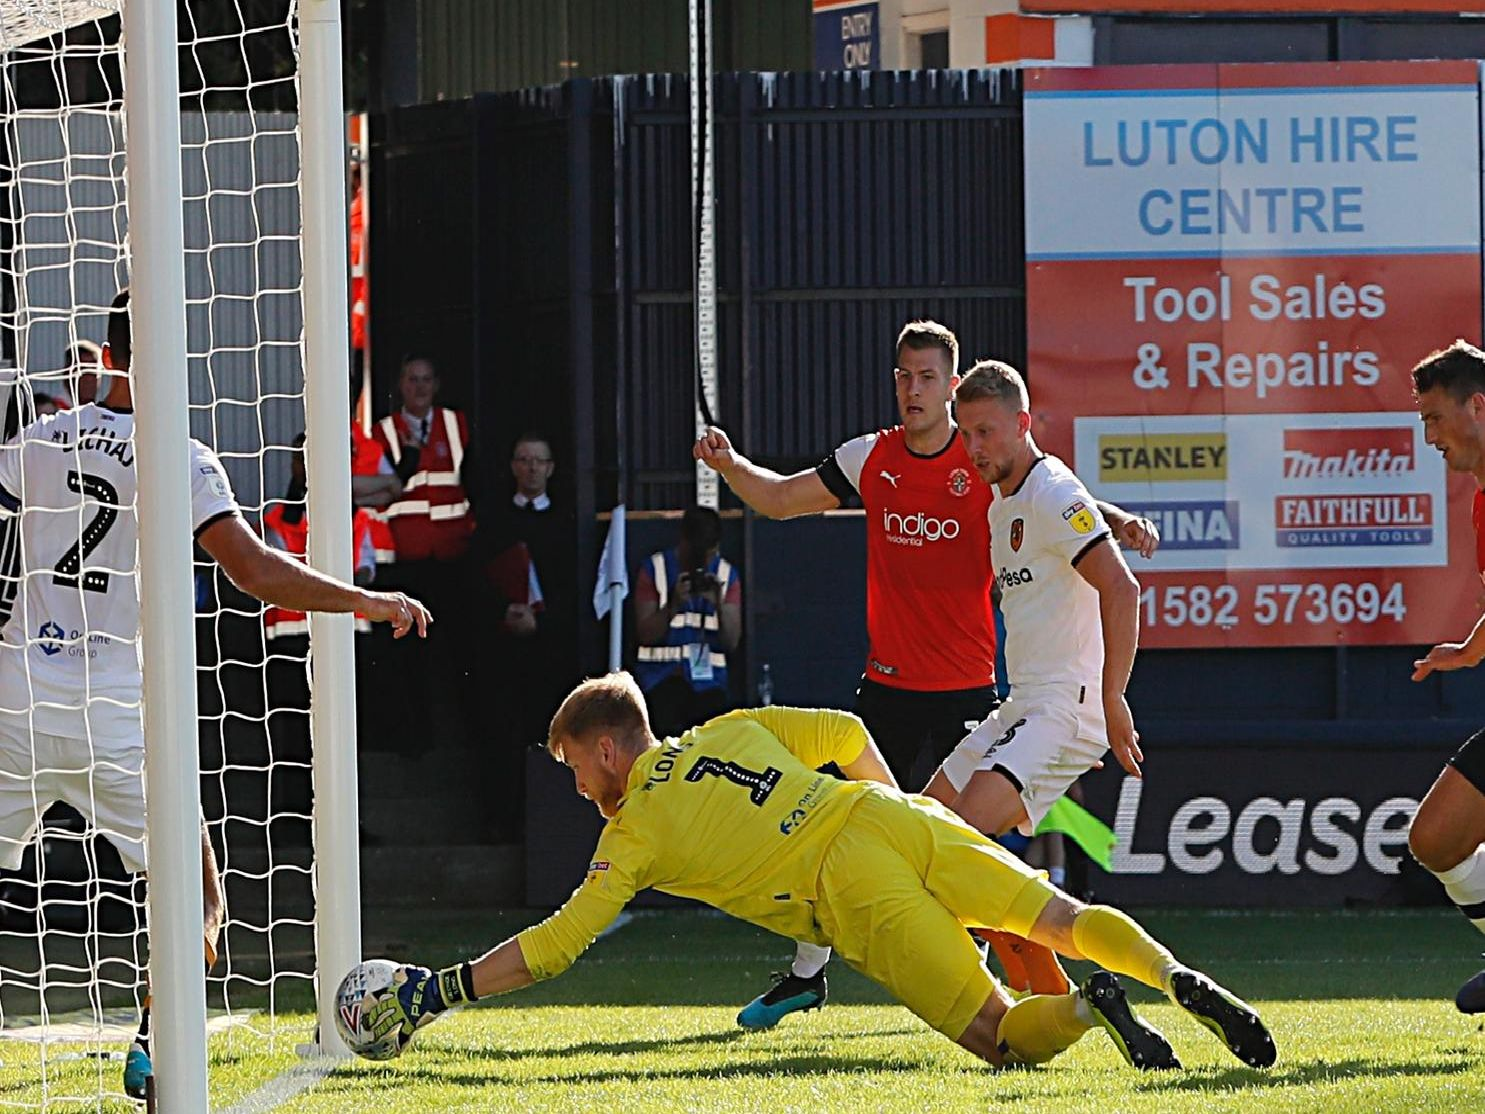 The Hatters go close to an equaliser against Hull on Saturday